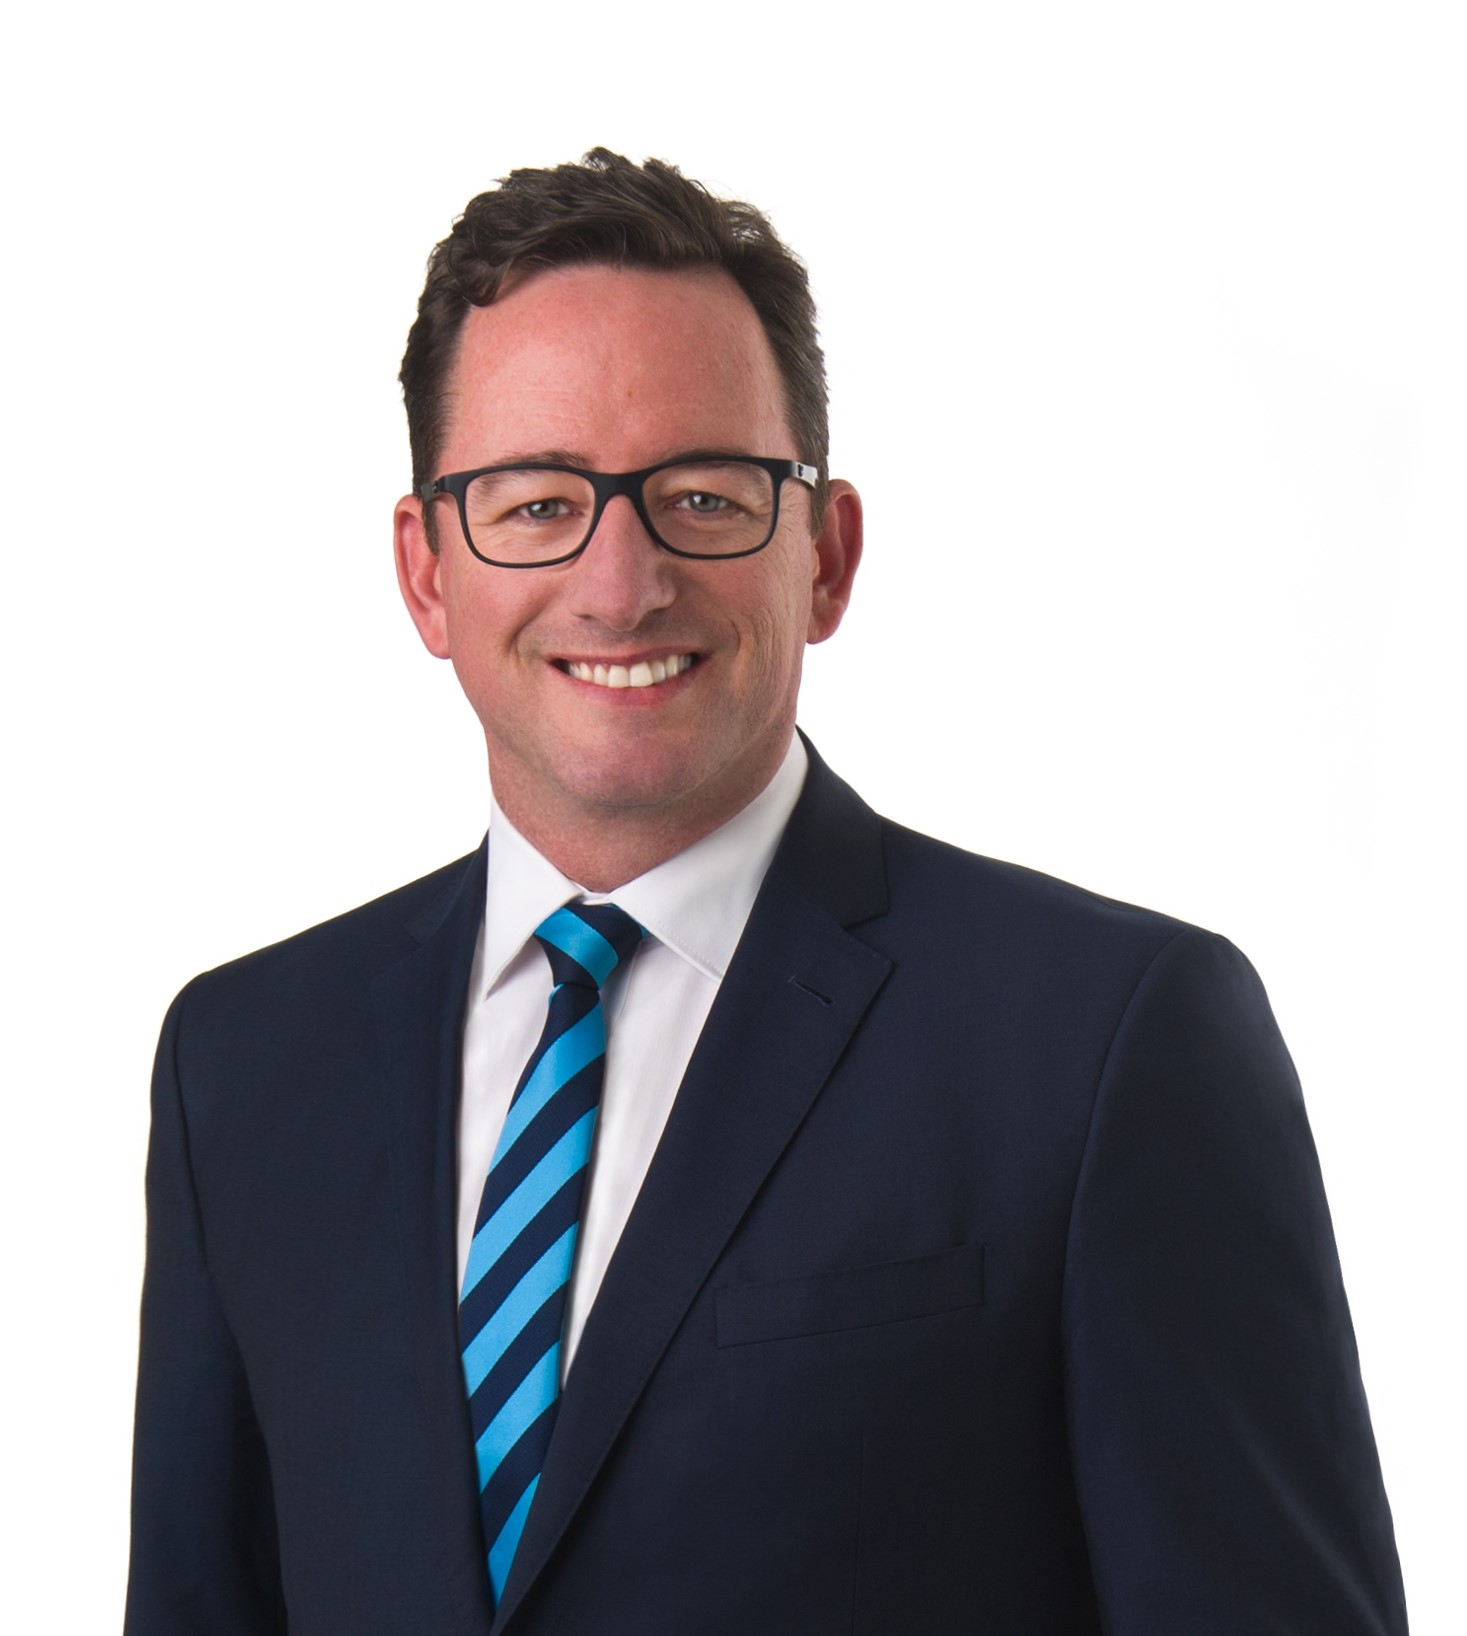 Harcourts International Strengthens Leadership with New CEO